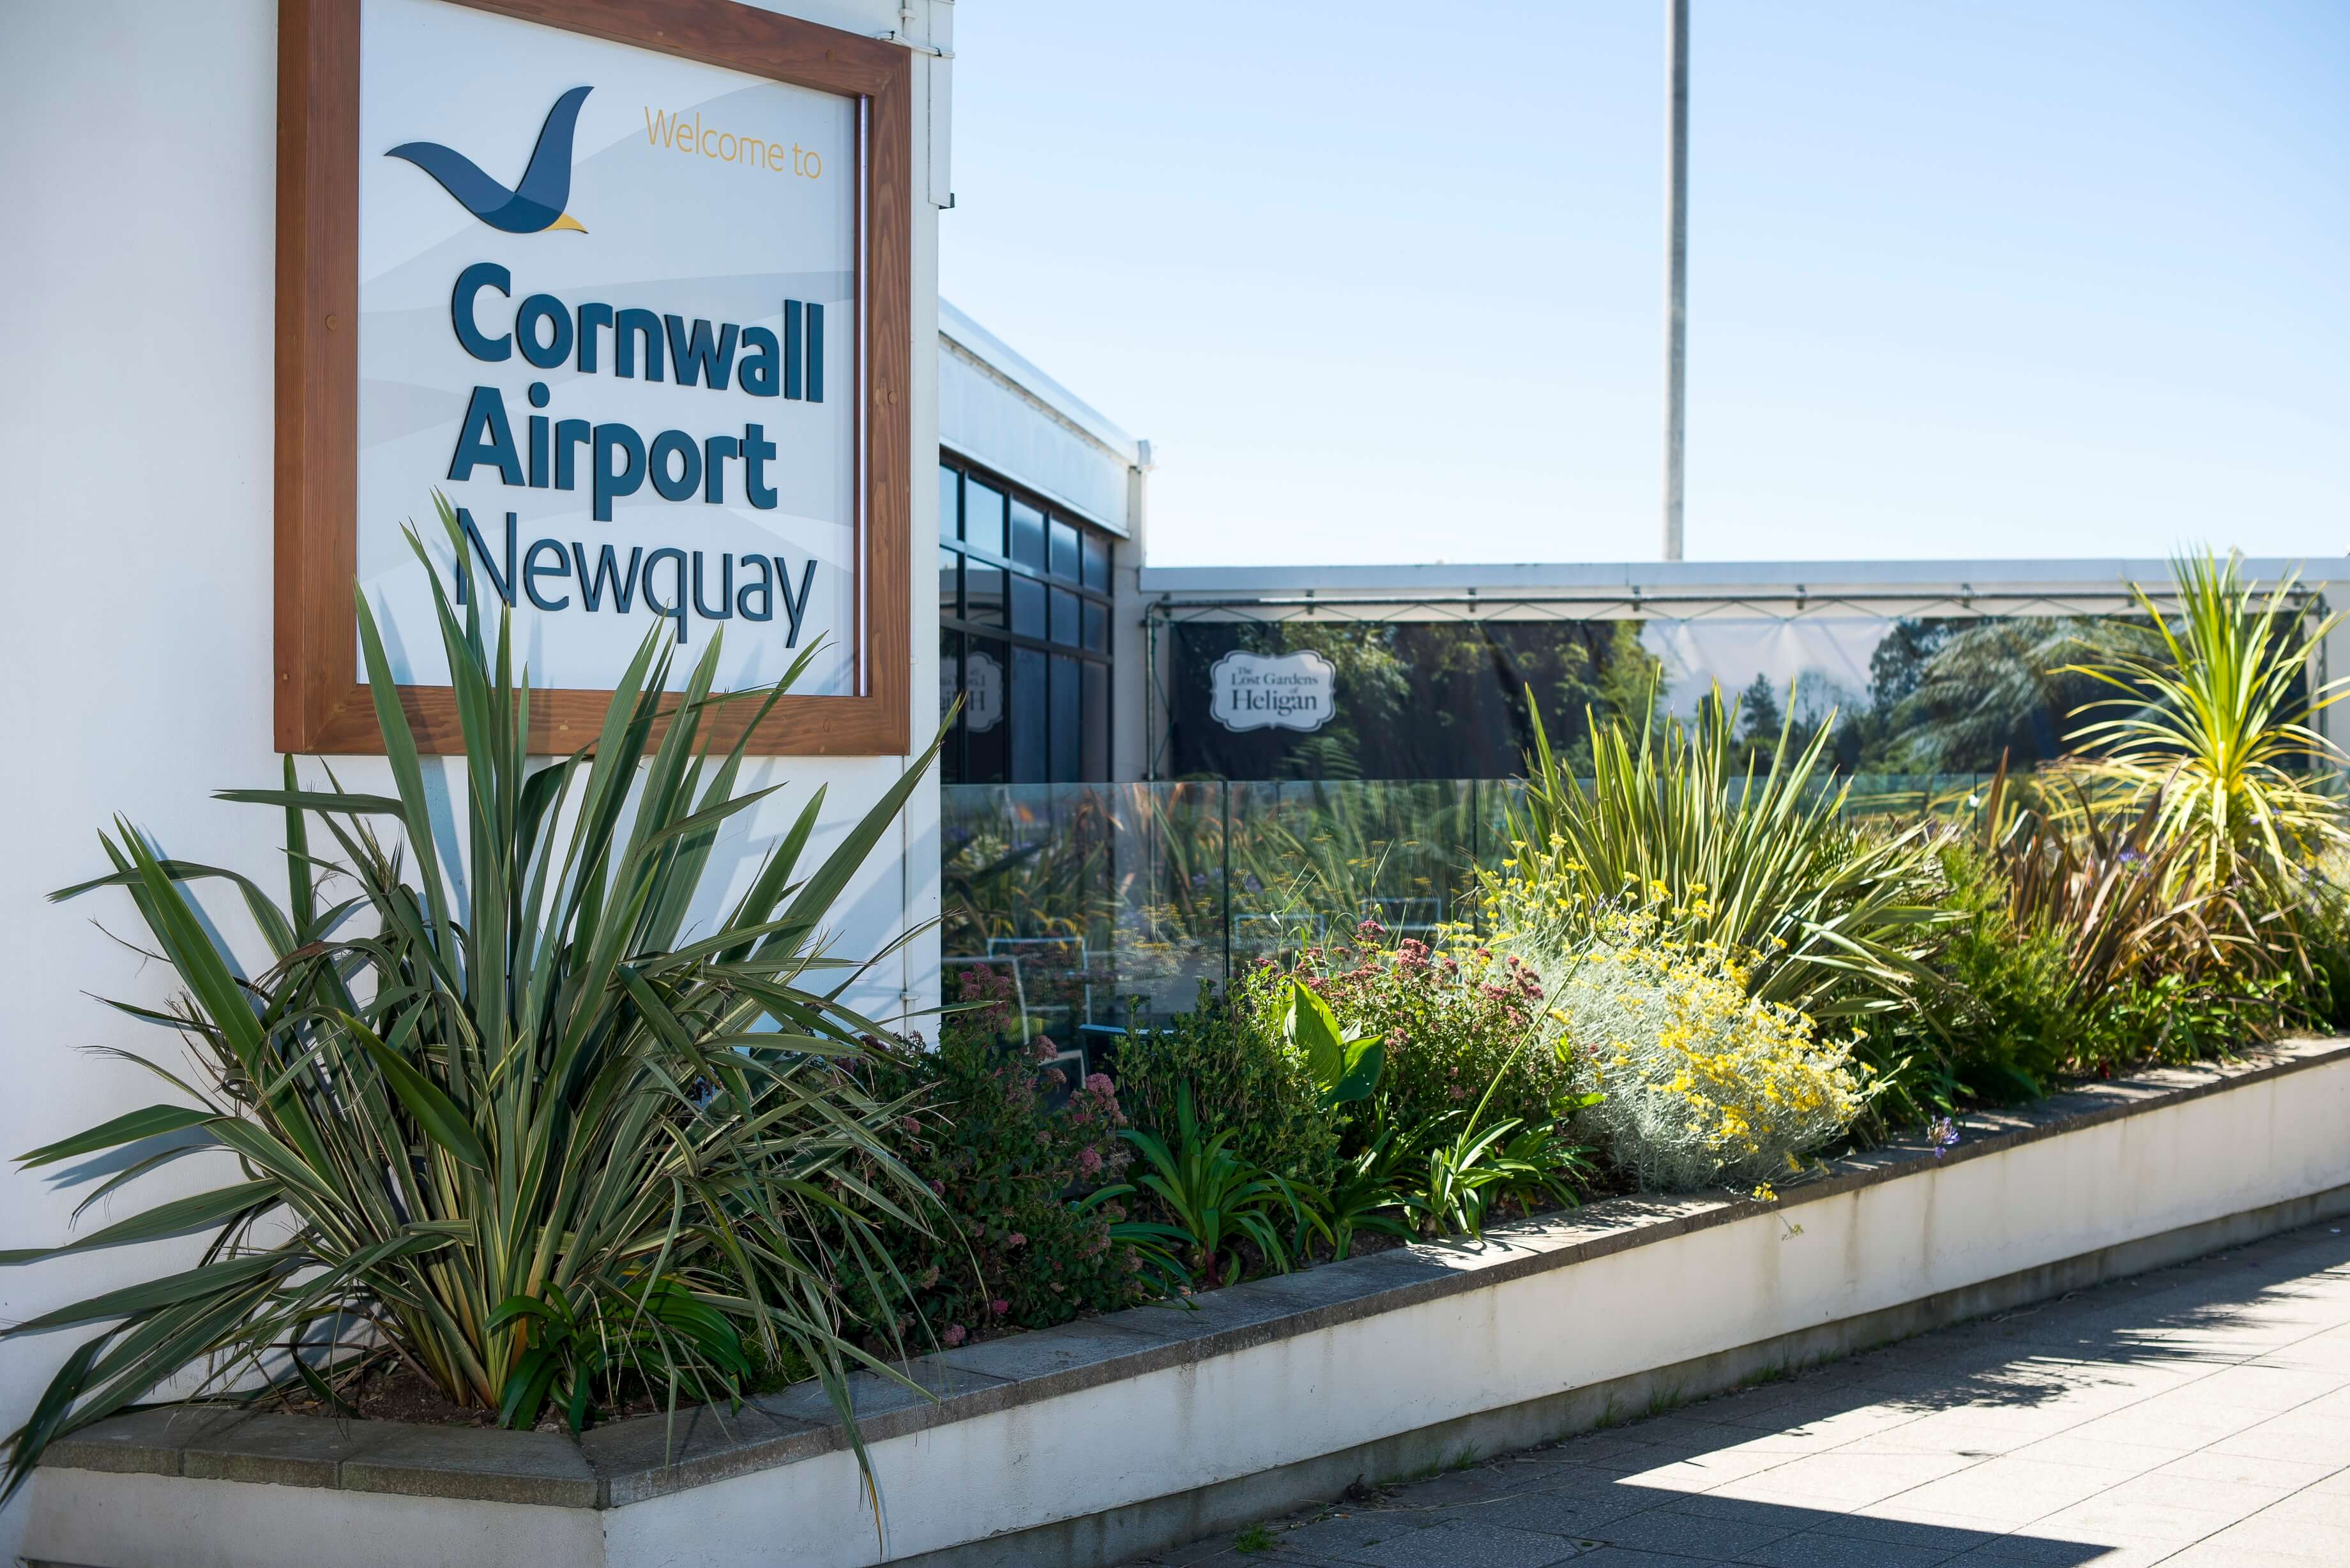 Cornwall Airport Newquay comes closer to the Channel Islands